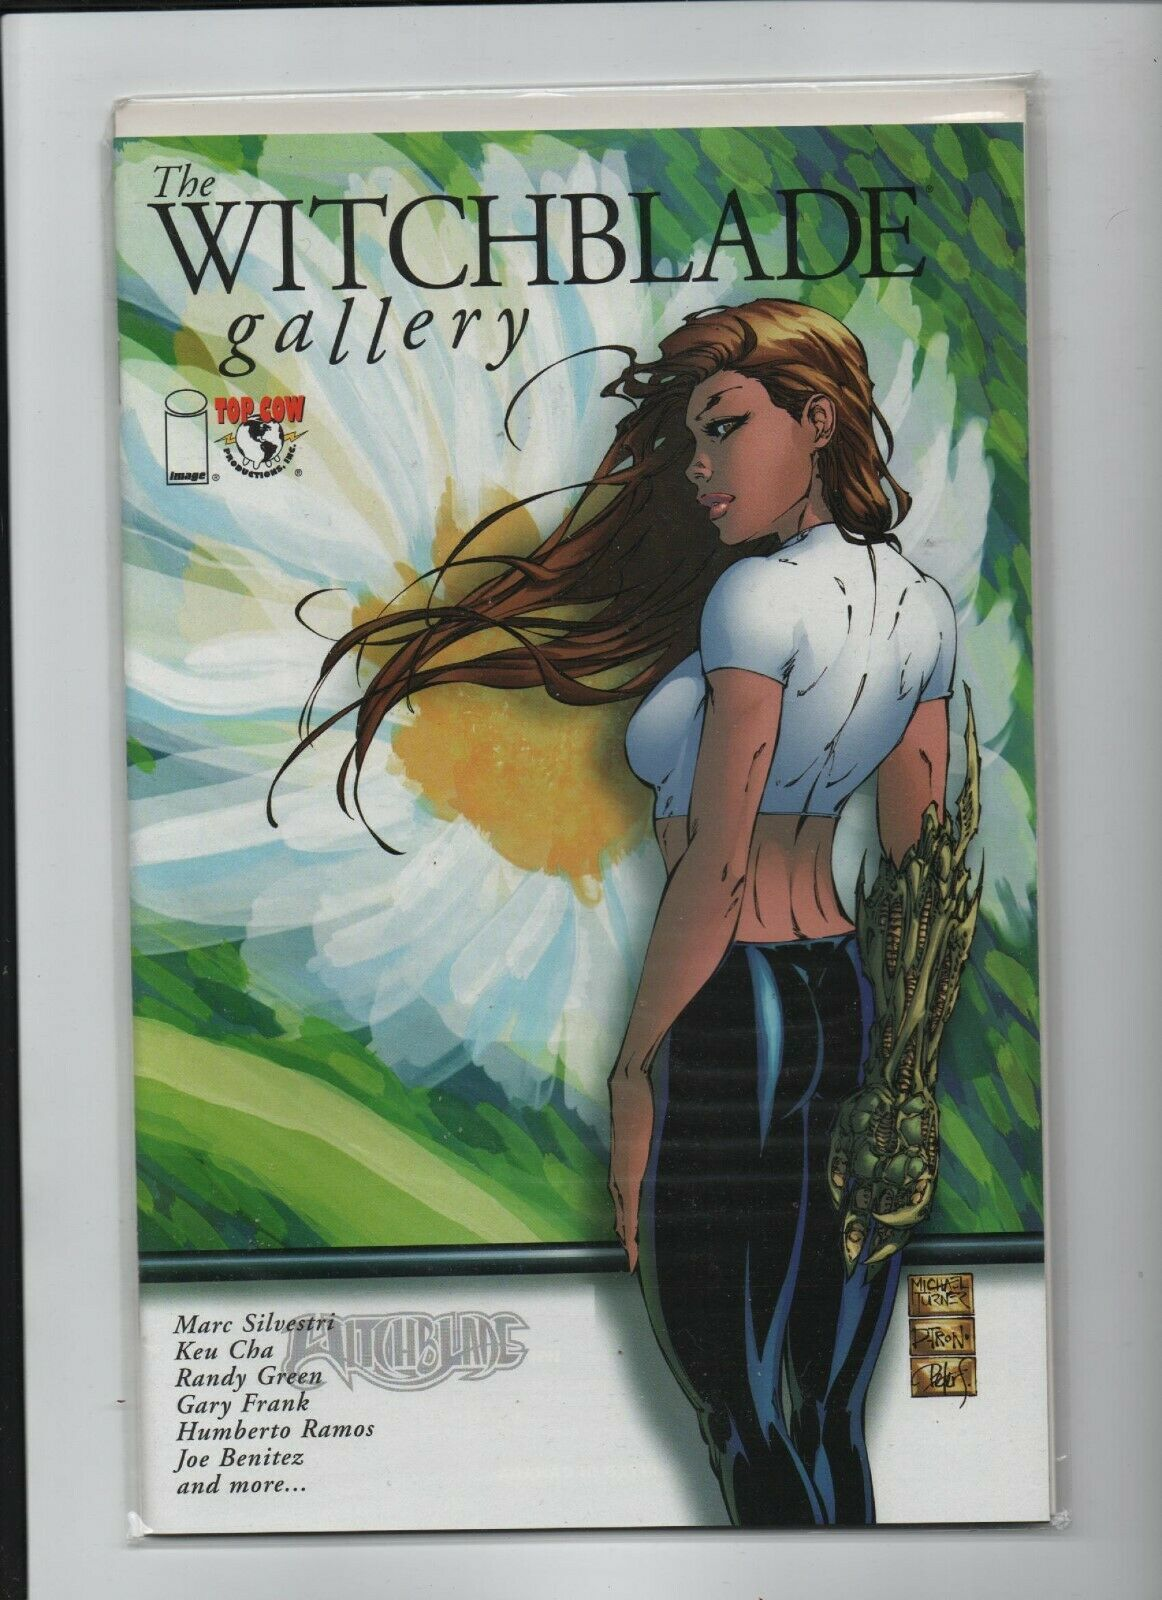 Primary image for The Witchblade Gallery #1A - Top Cow / Image Comics - Marc Silvestri, Keu Cha.